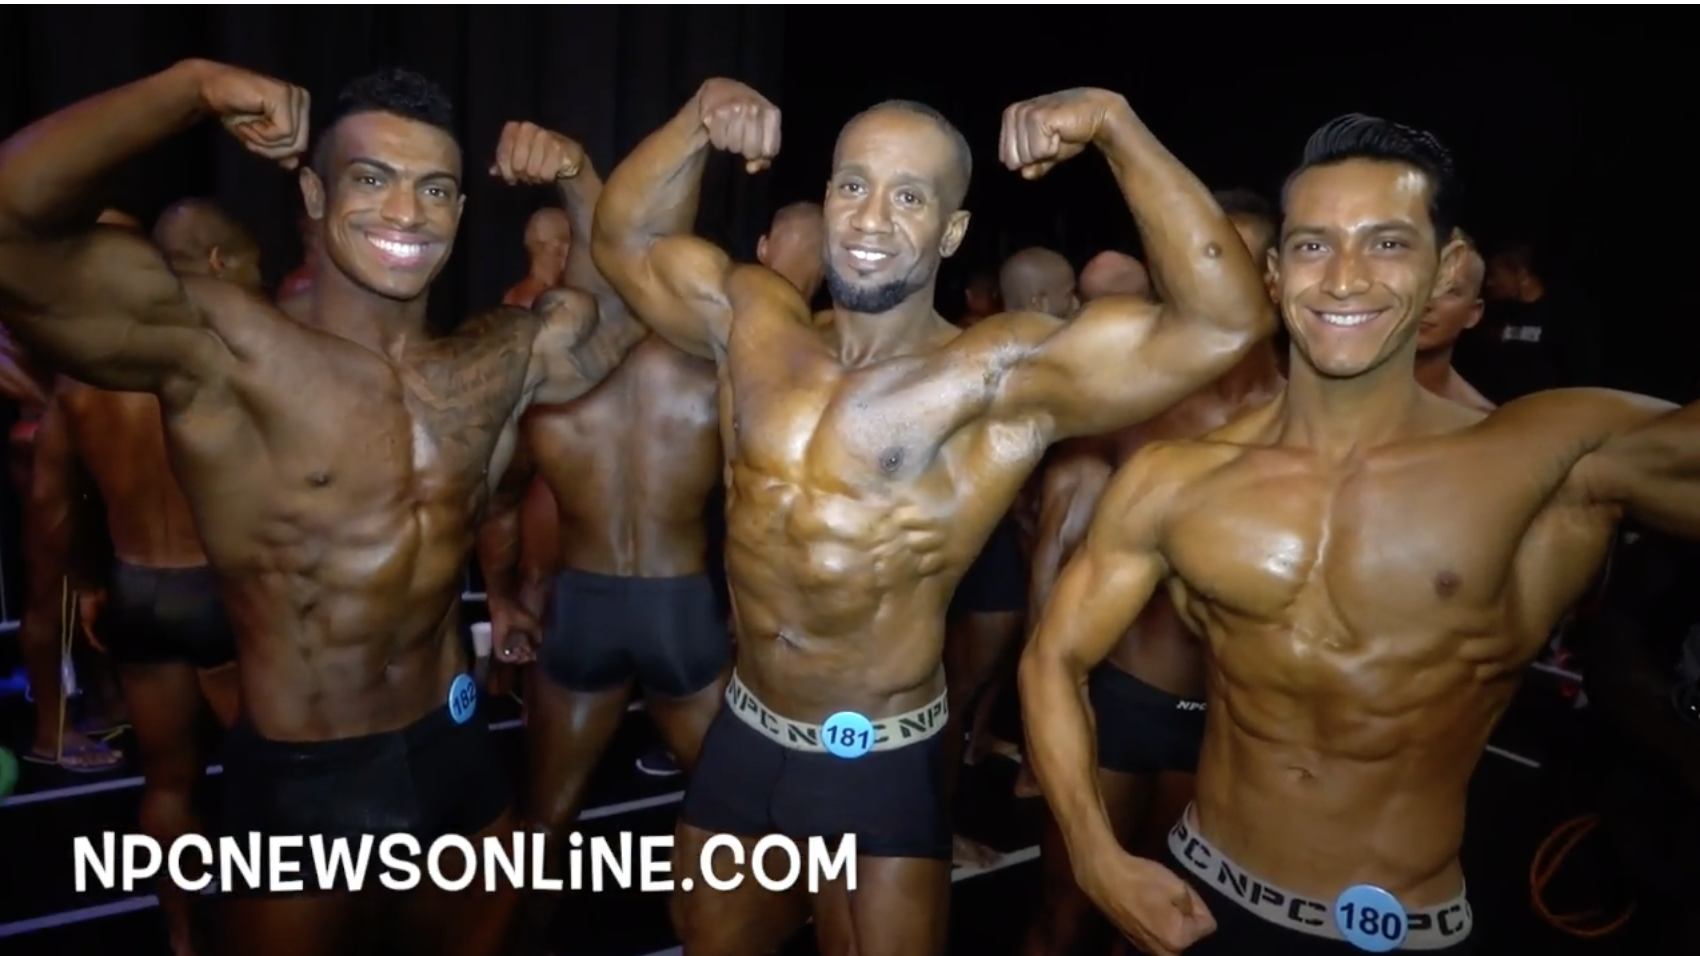 2017 NPC Amateur Olympia Men's Backstage Video: Las Vegas Nevada.